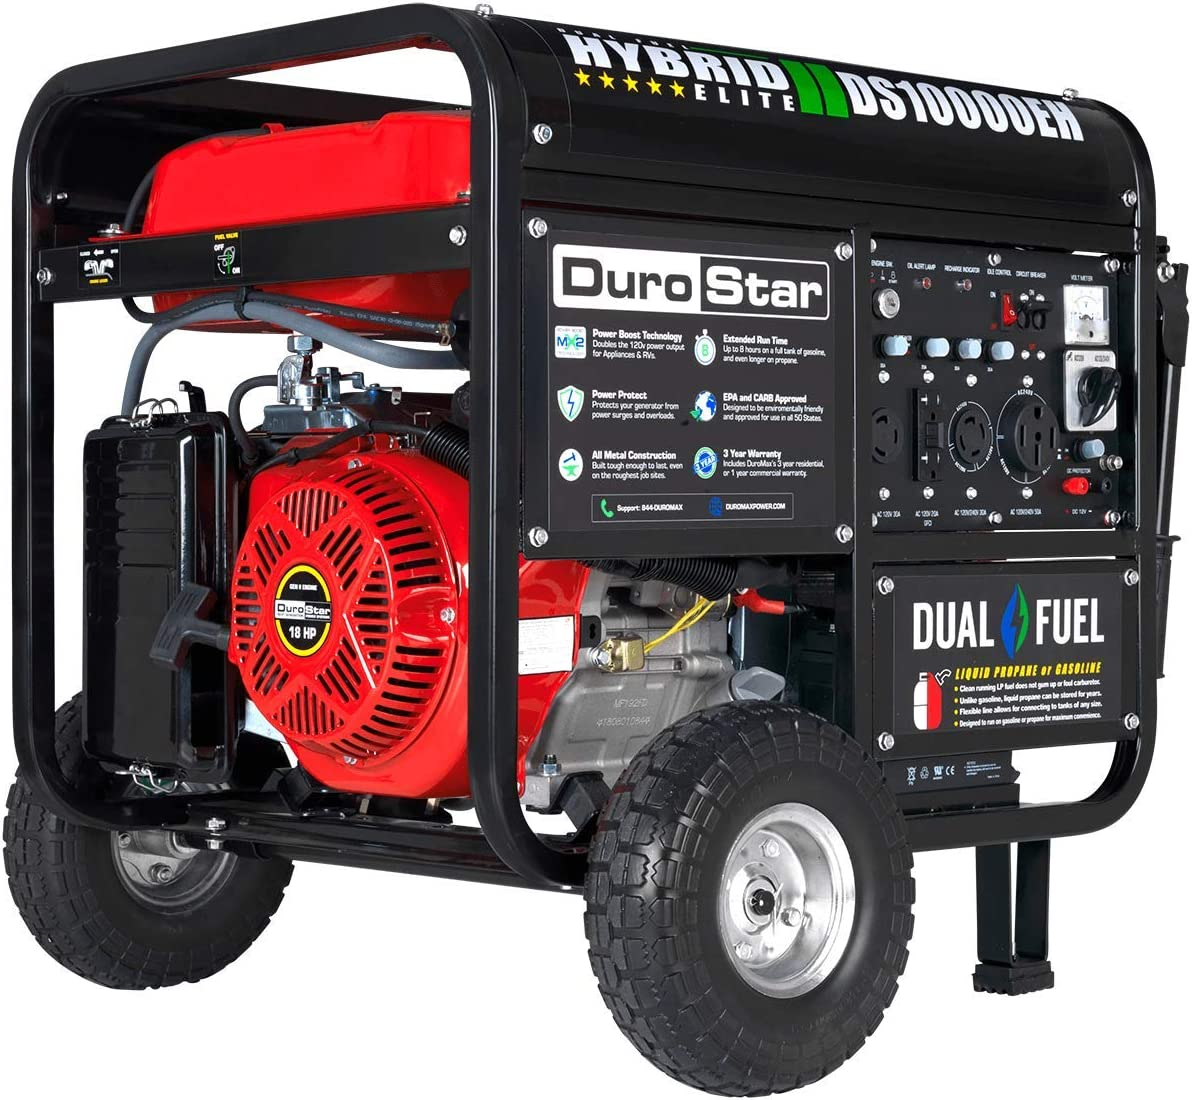 Durostar DS10000EH Dual Fuel Portable Generator-10000 Watt Electric Start-Home Back Up & RV Ready, 50 State Approved, Red/Black